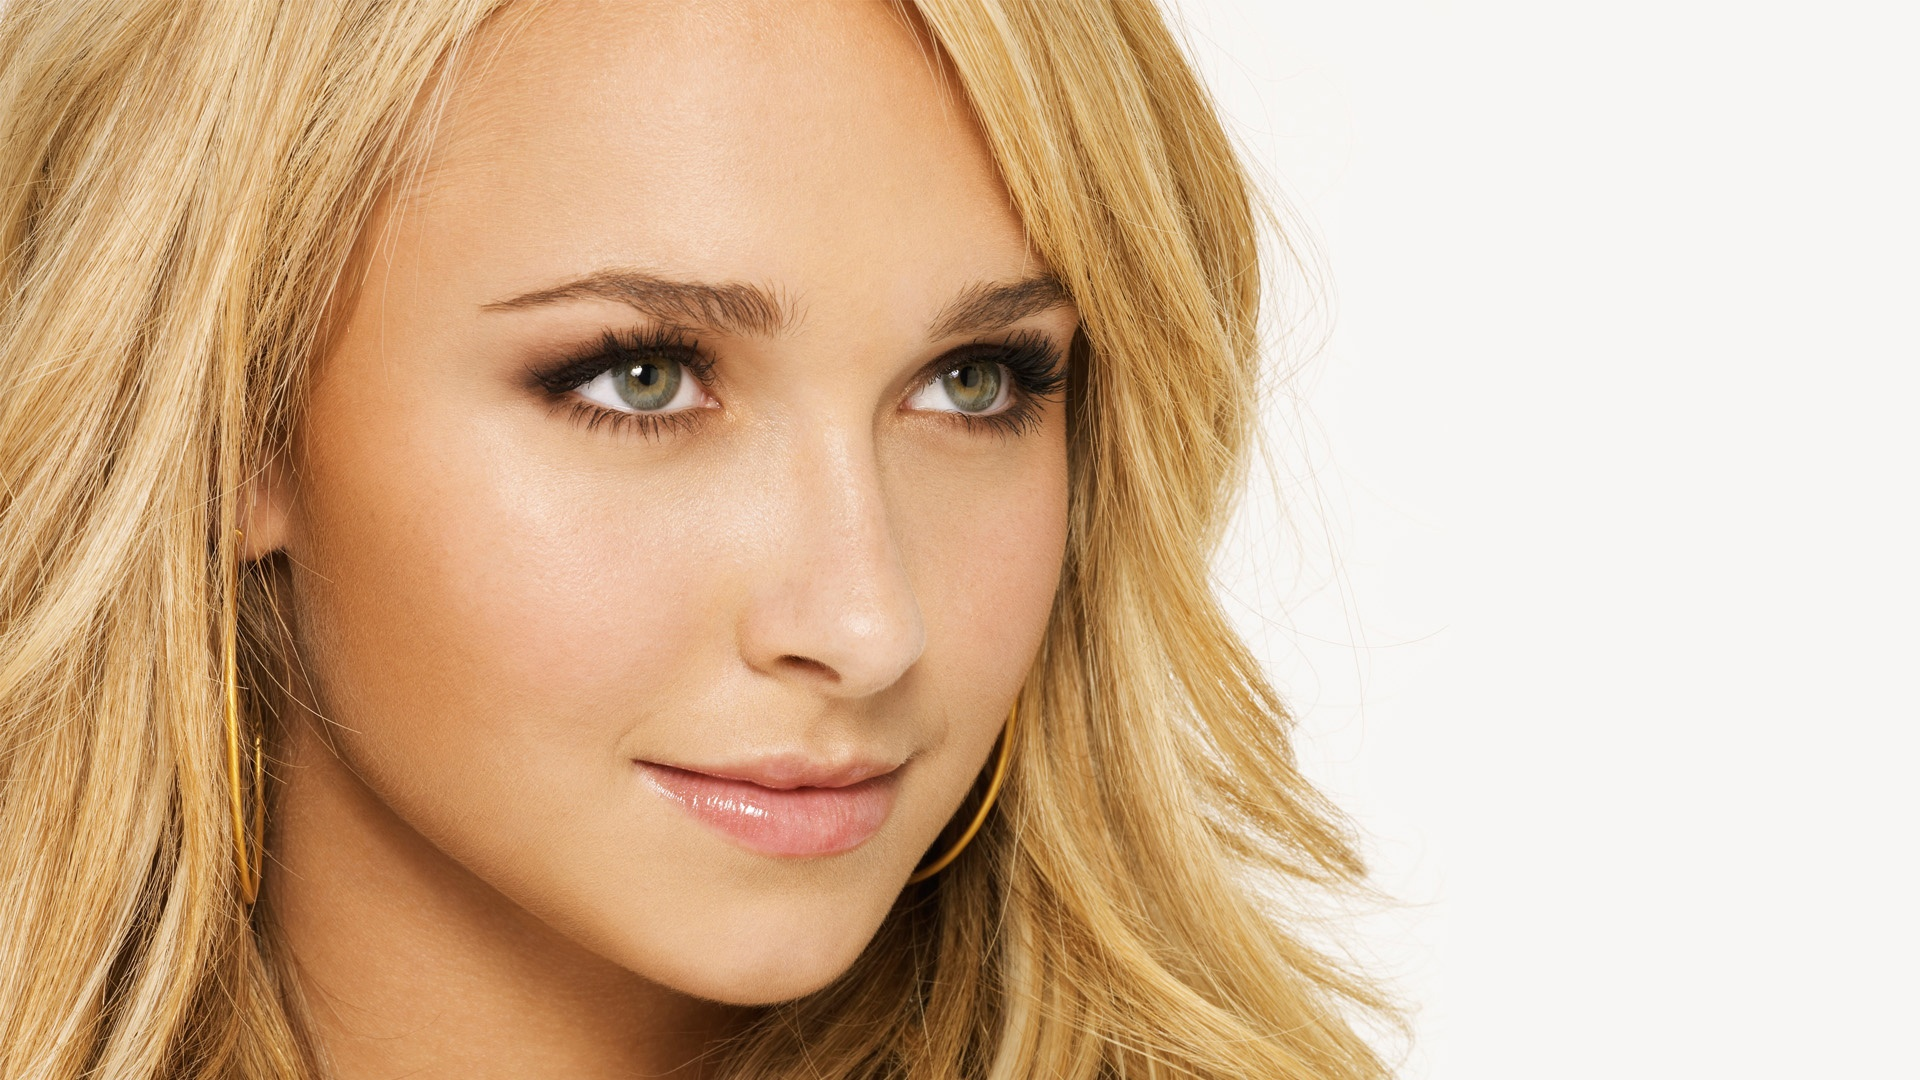 haydenpanettiere wallpapers hd A9